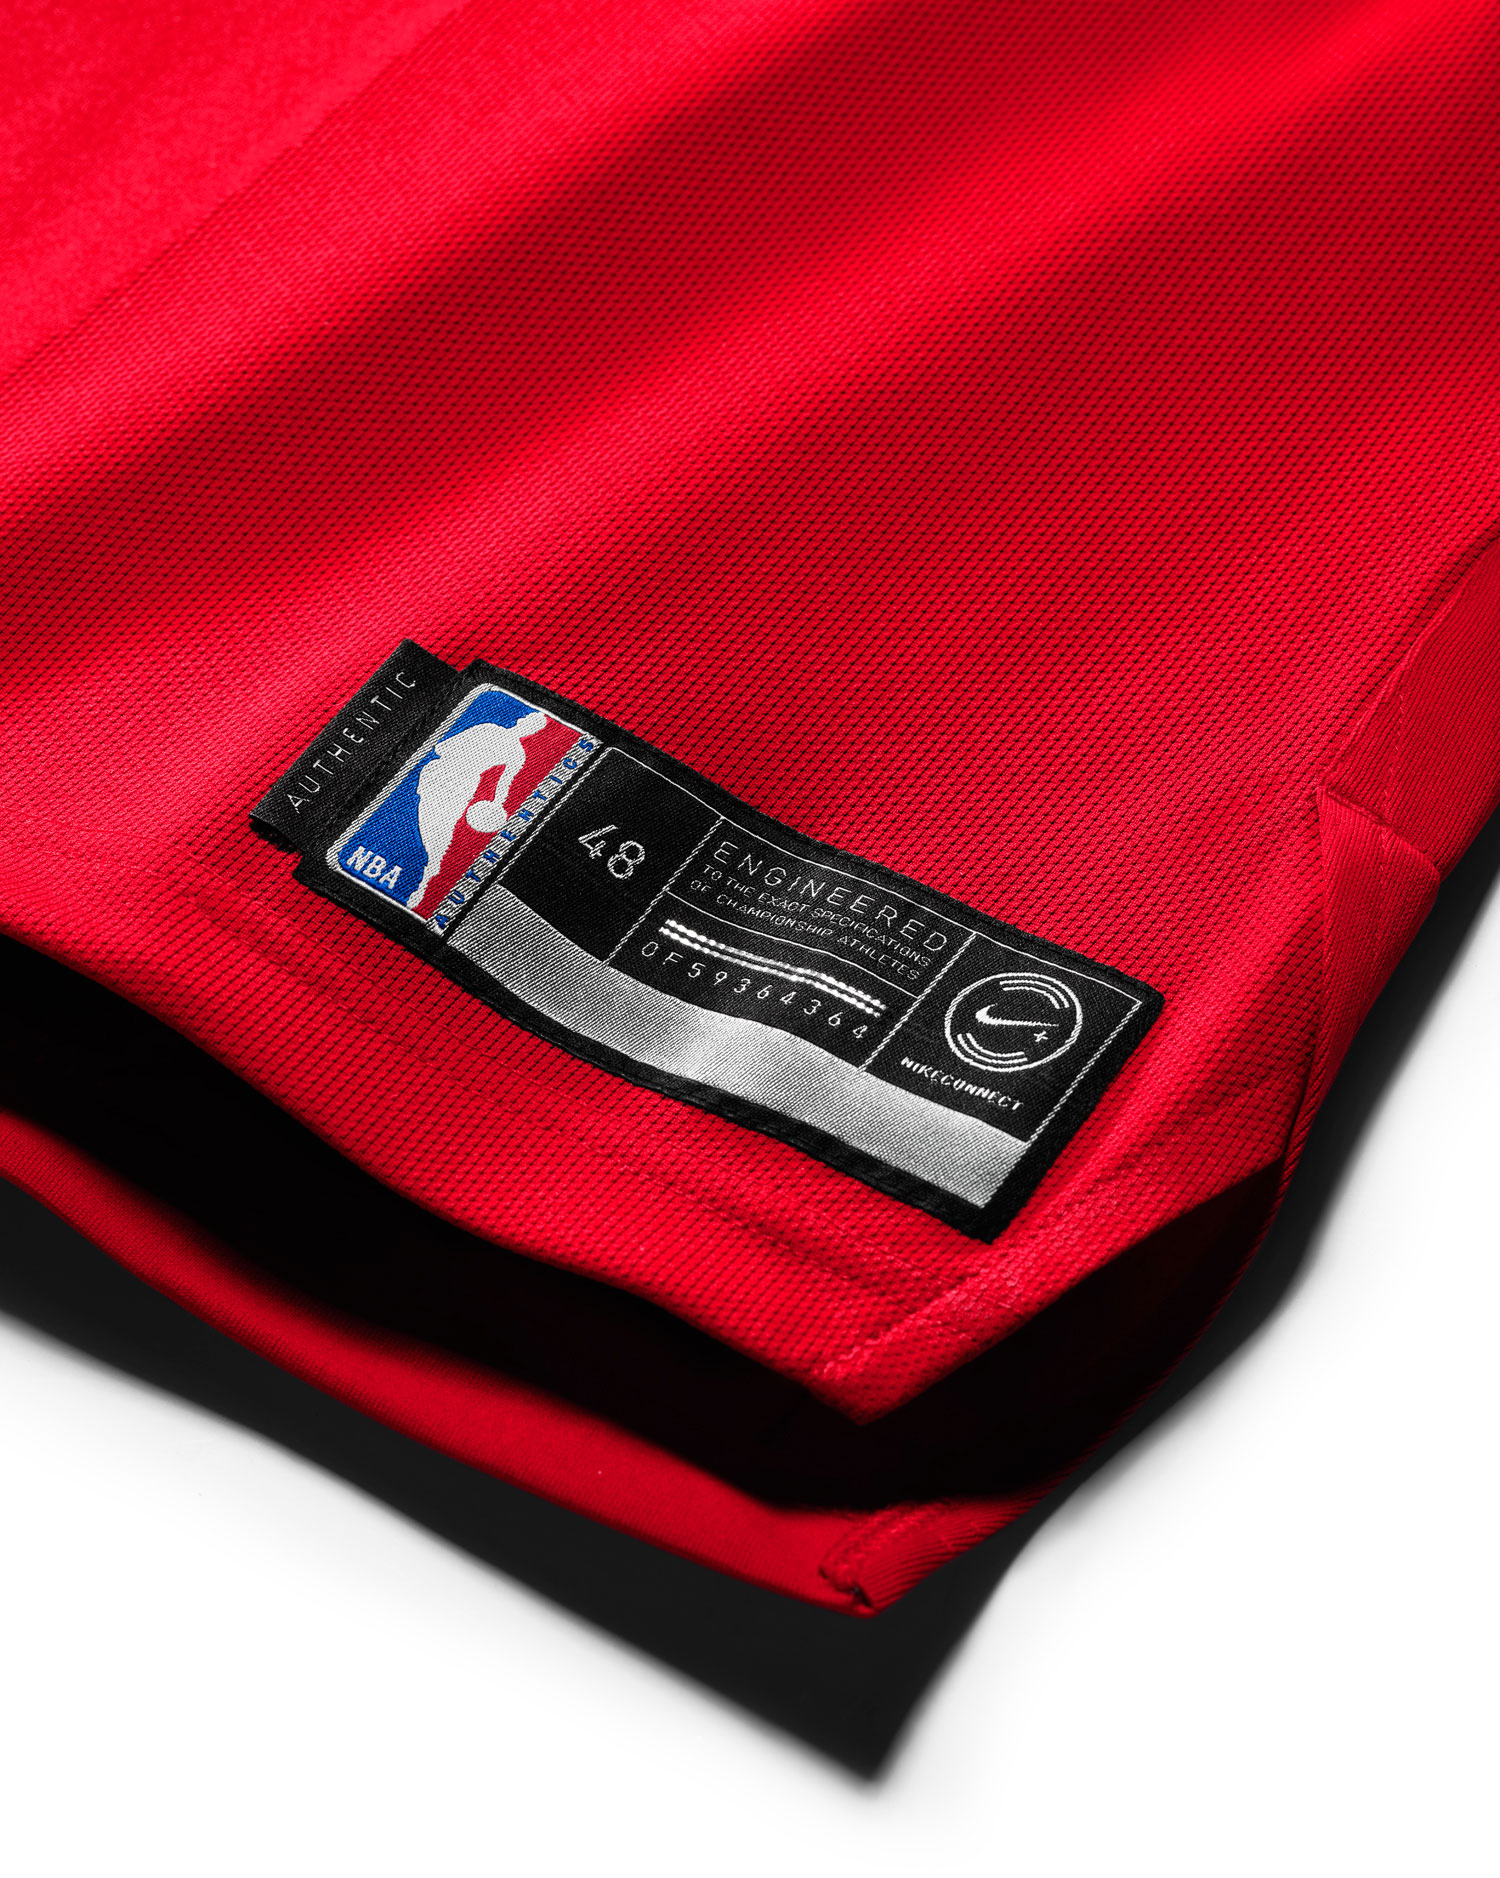 jordan-5-fire-red-michael-jordan-nba-nike-jersey-4